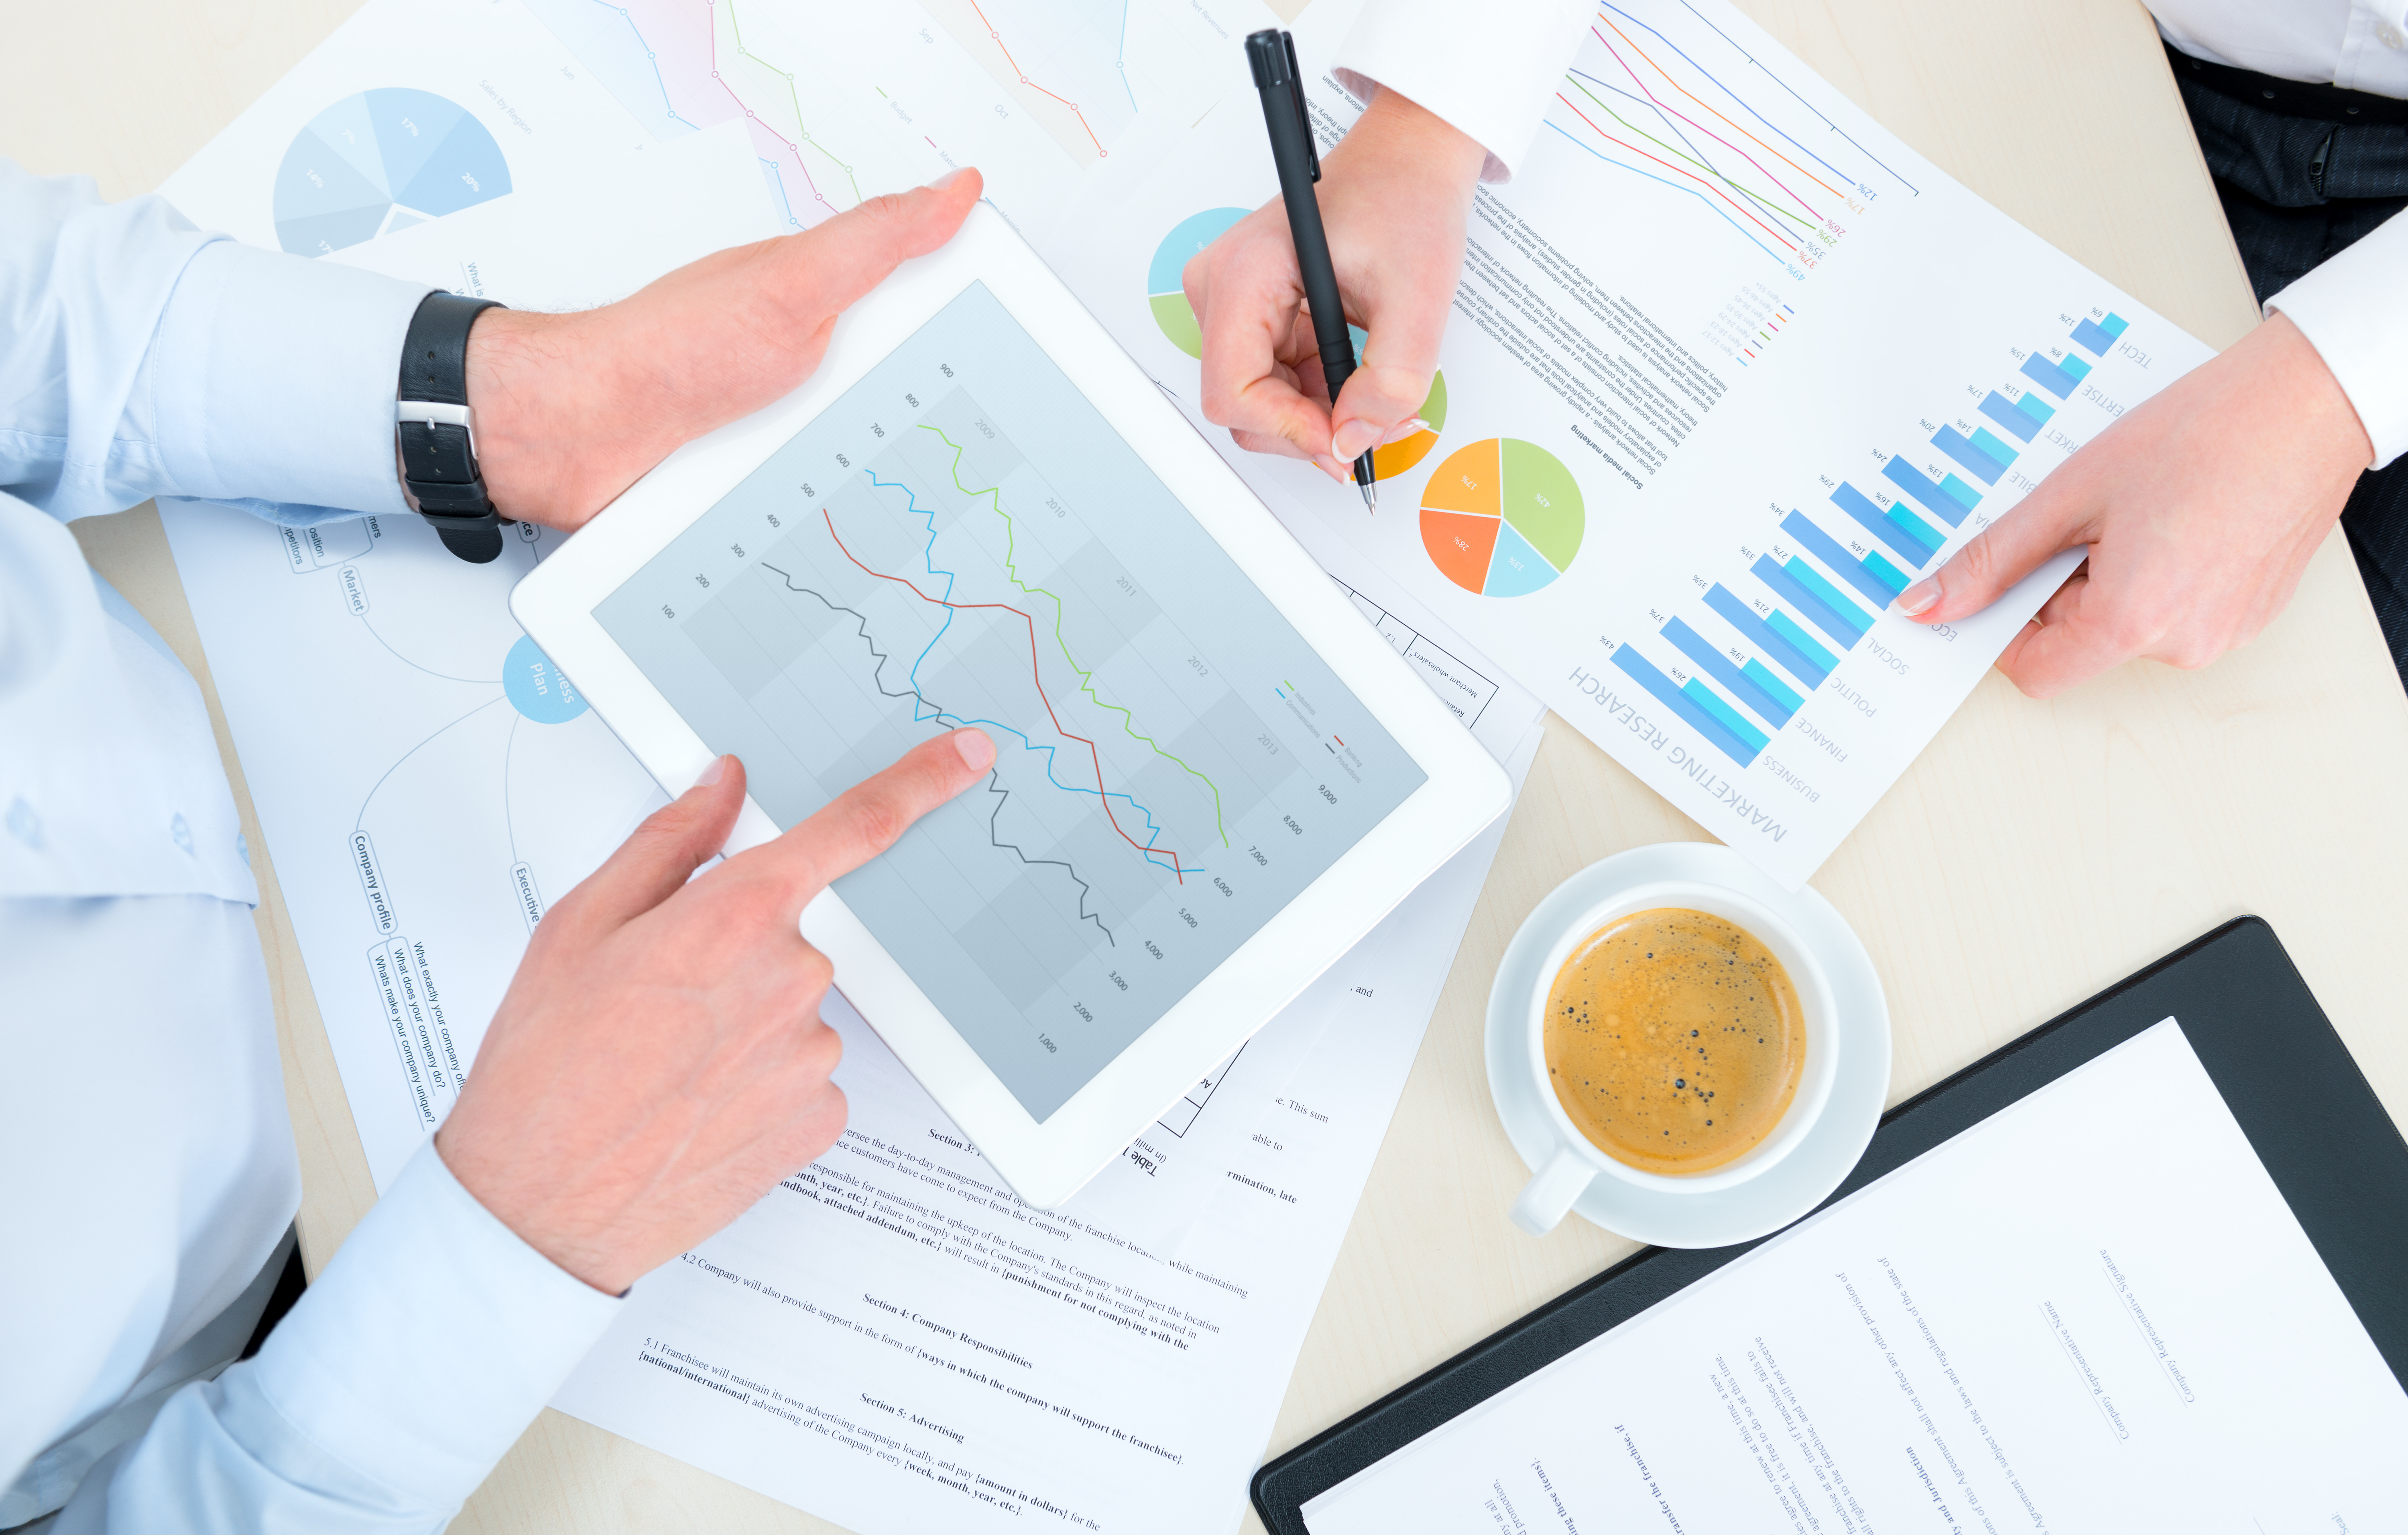 analysis and investment consulting report on